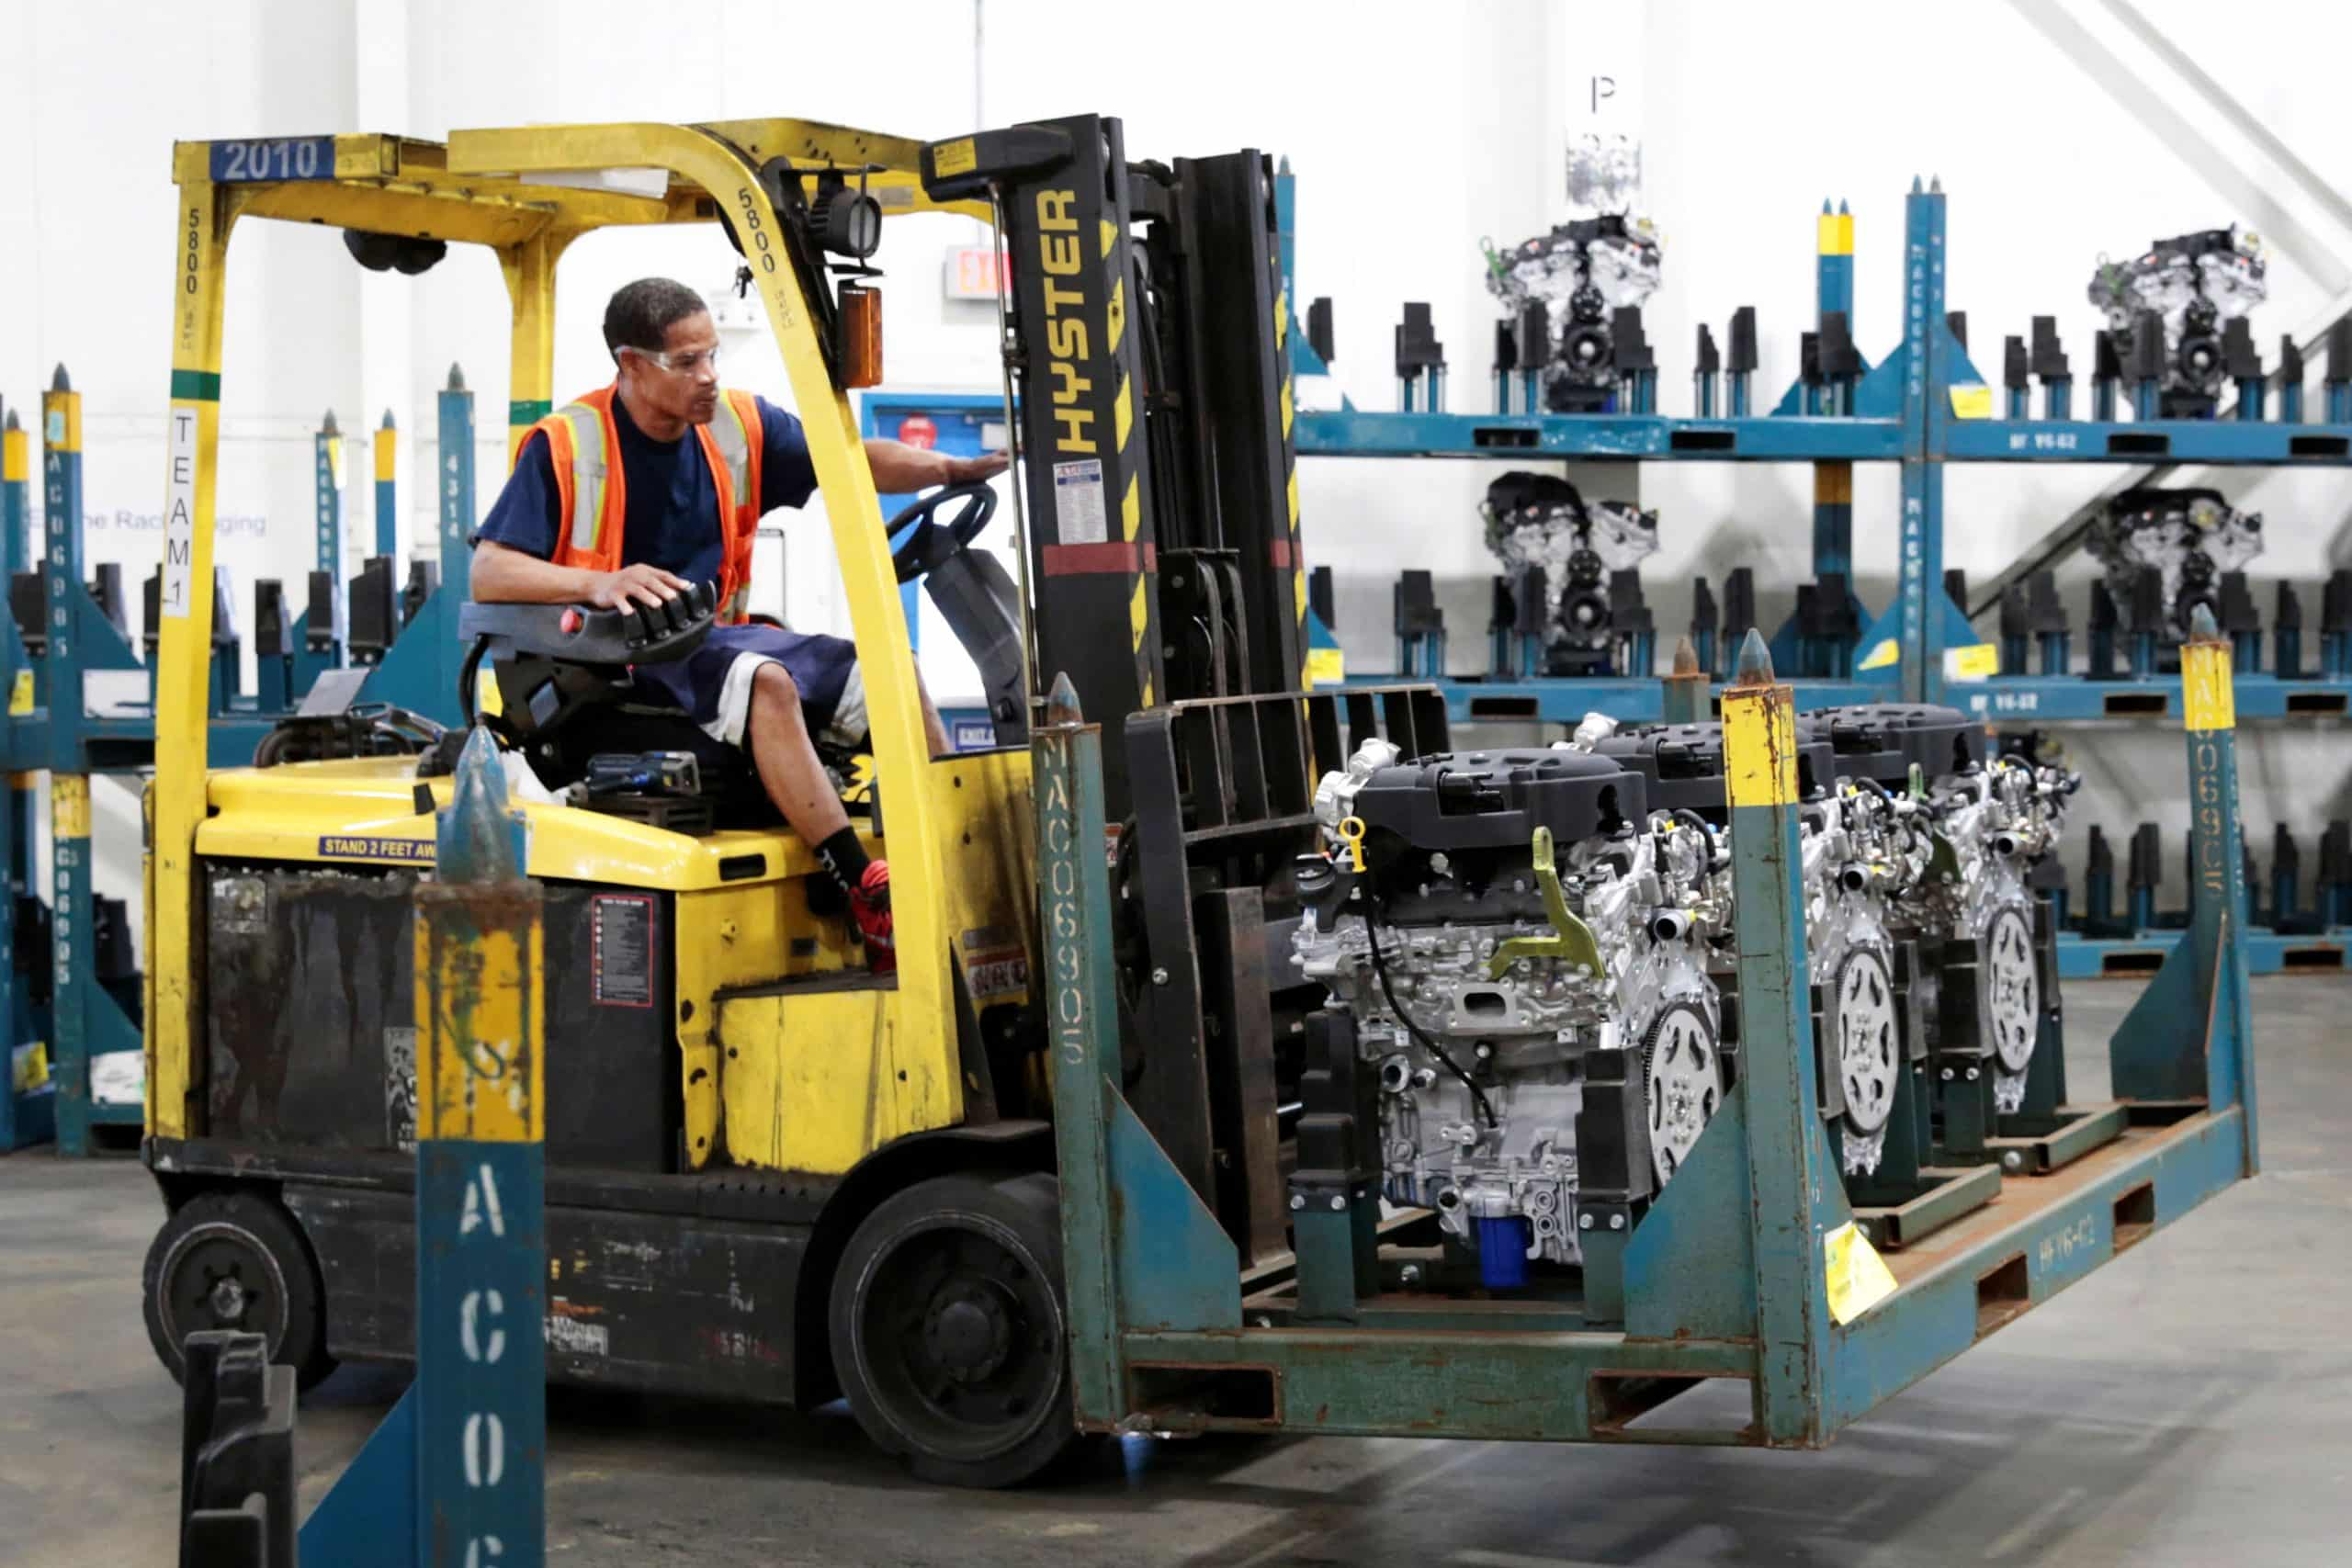 Manufacturing jobs are 'tough to fill' and stand out as the weak spot in the employment picture